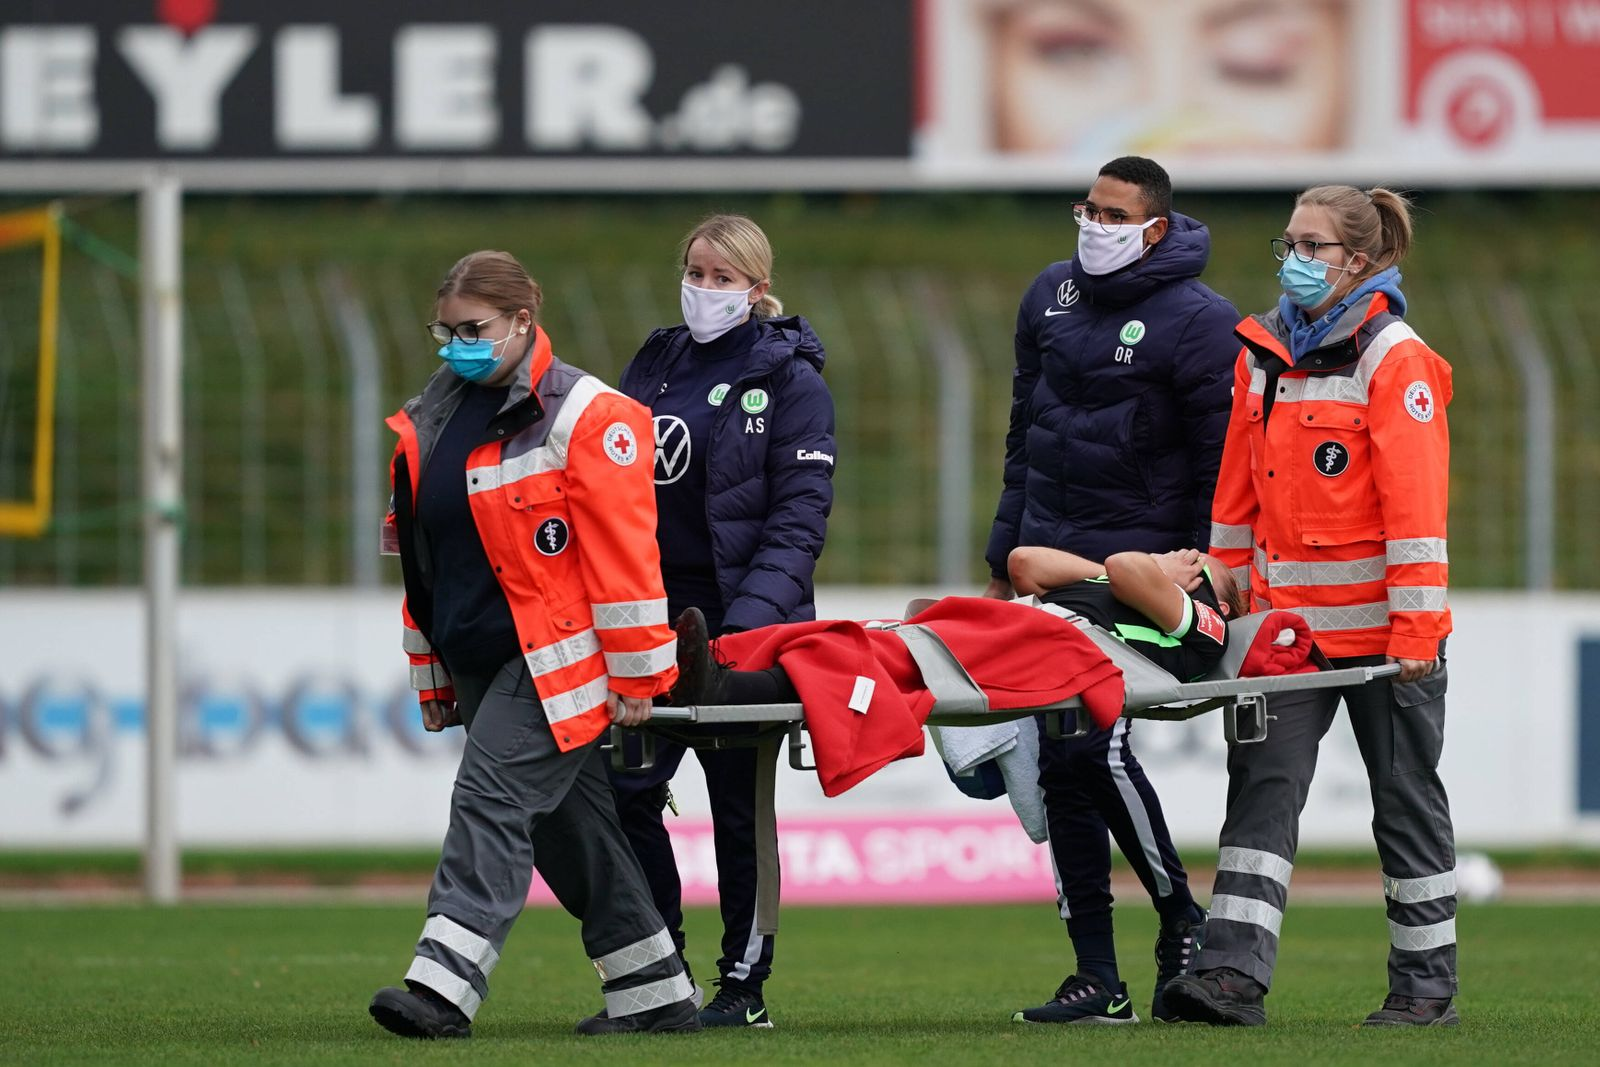 FREIBURG, GERMANY OCT 11TH: Alexandra Popp ( 11 Wolfsburg) getting taken from the field after a foul and inury during t